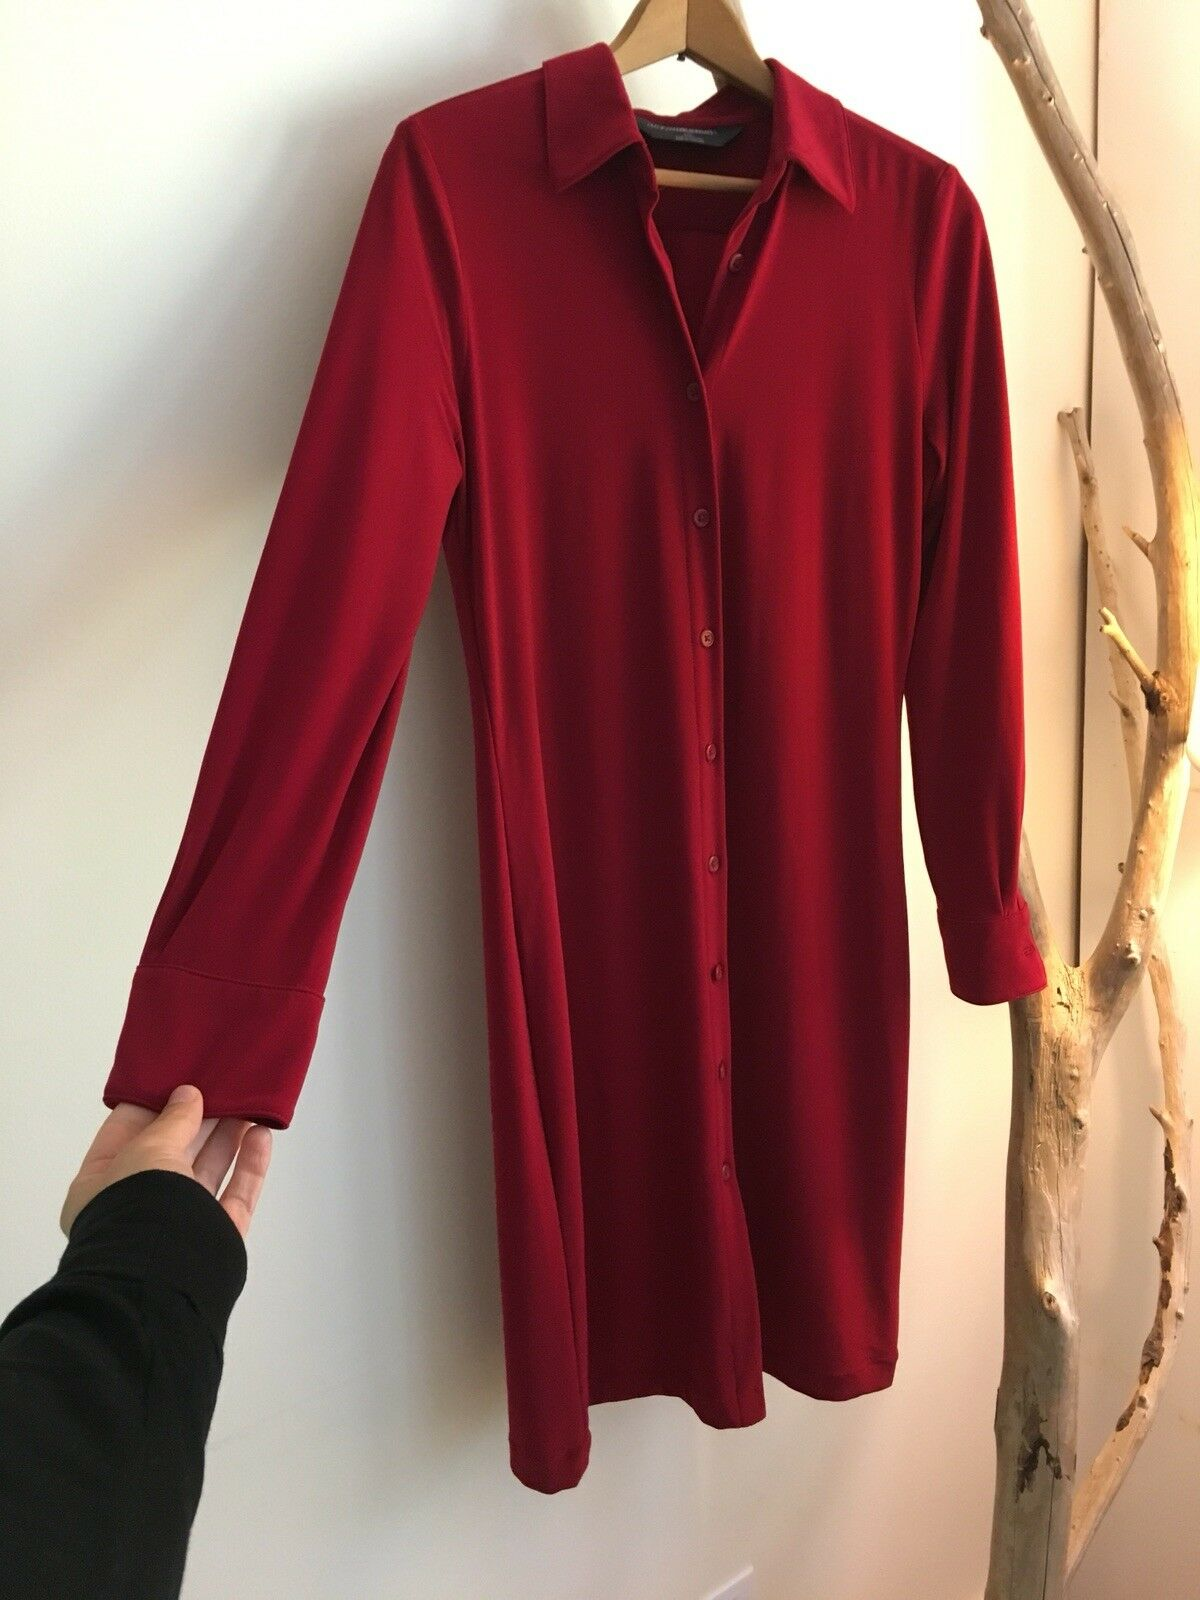 Gorgeous Norma Kamali Red Button Down Dress Duster, Size Small